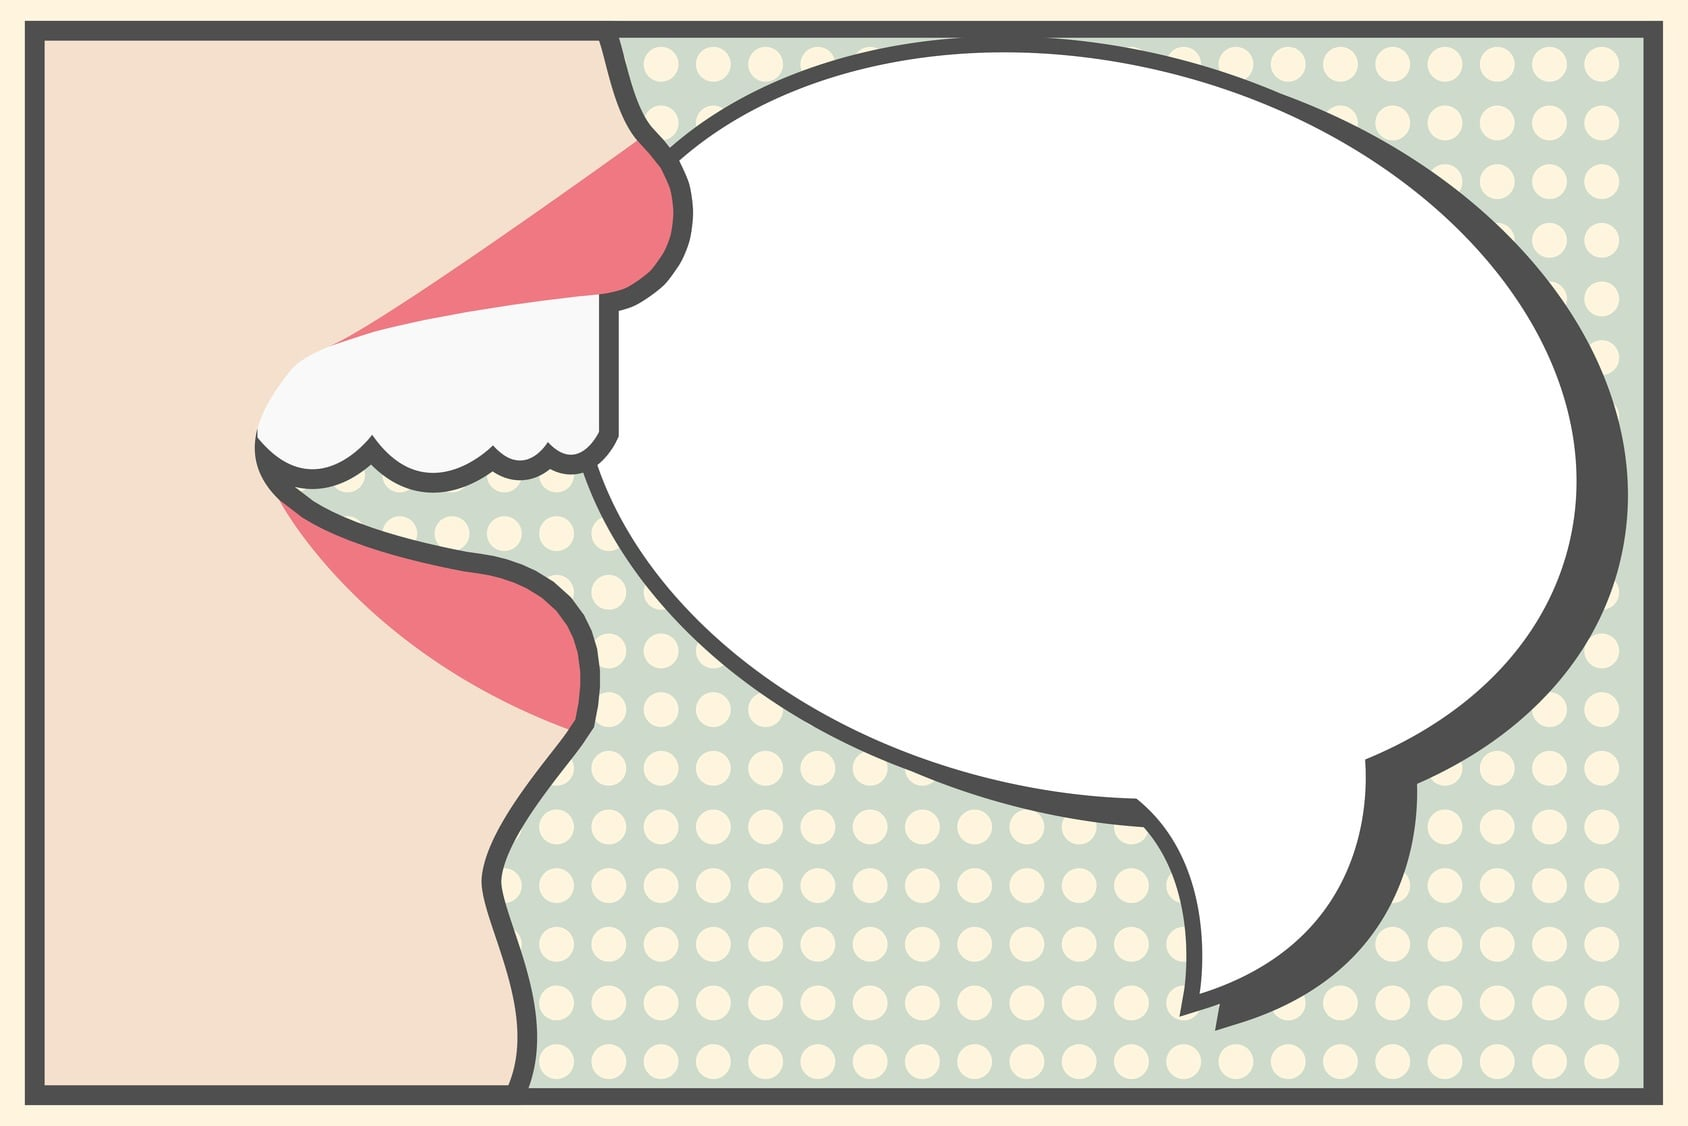 Generate some word-of-mouth buzz and get your sales cranking!